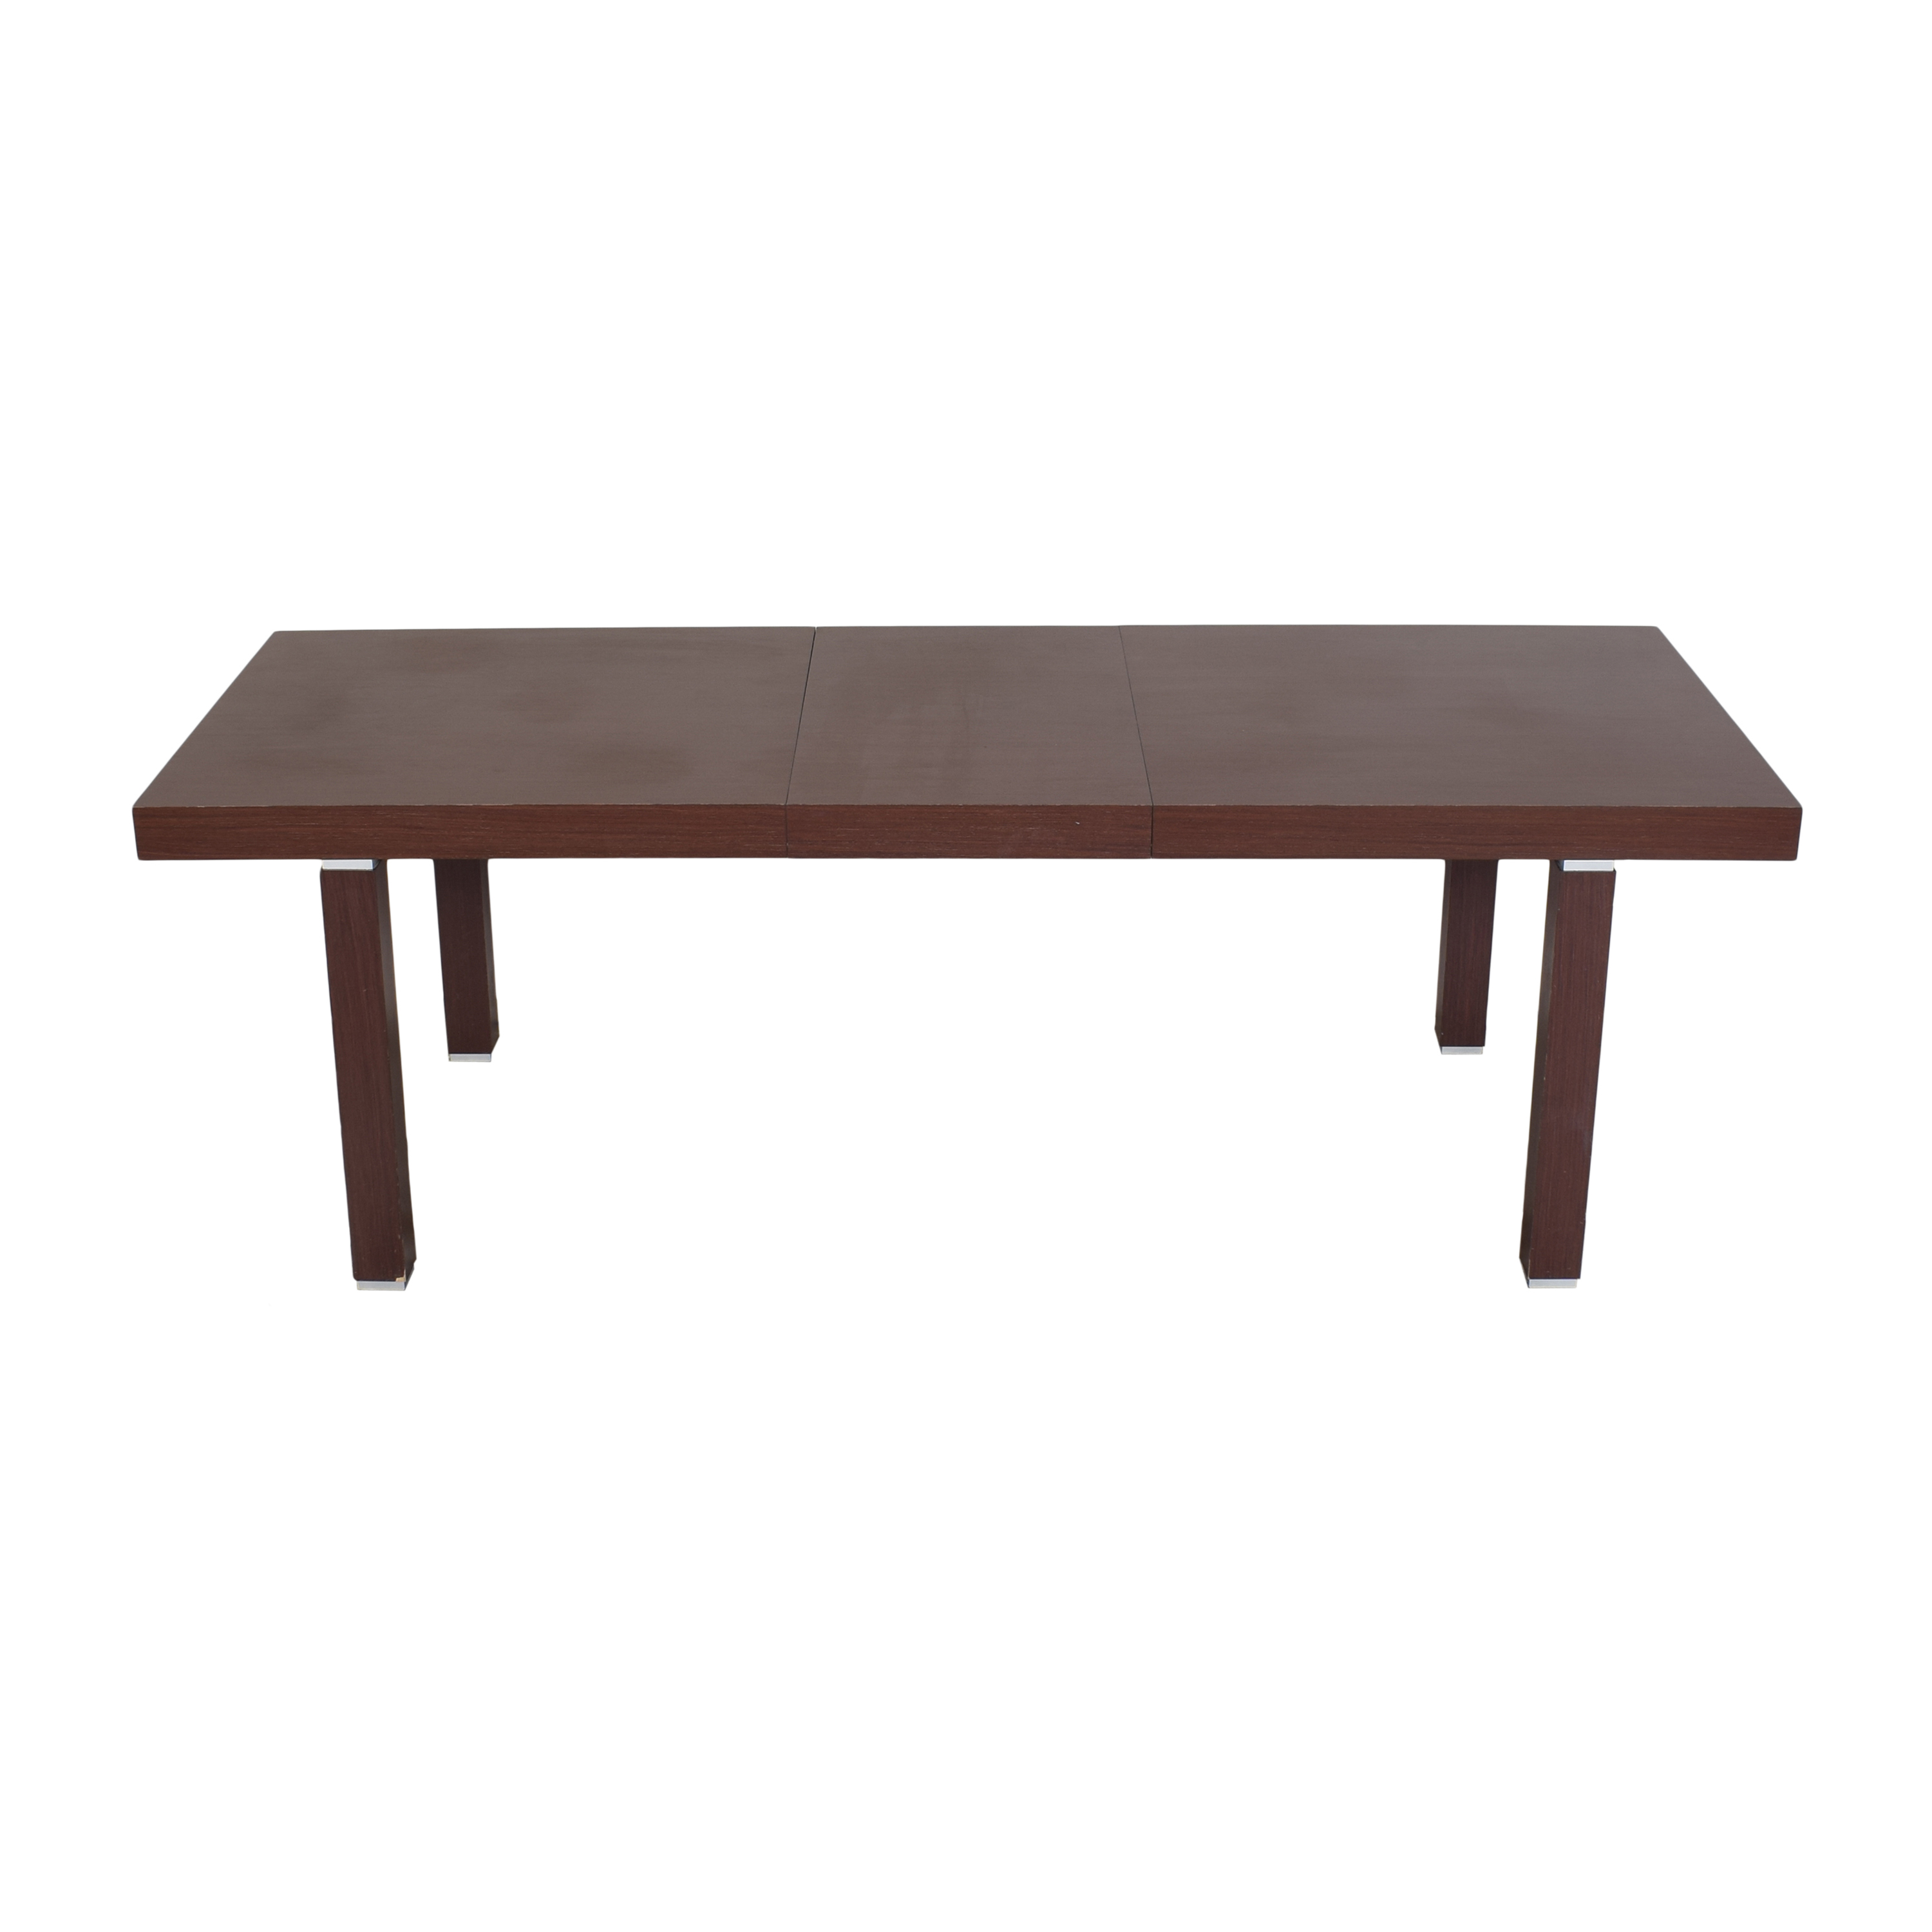 Rossetto Rossetto Extendable Dining Table coupon